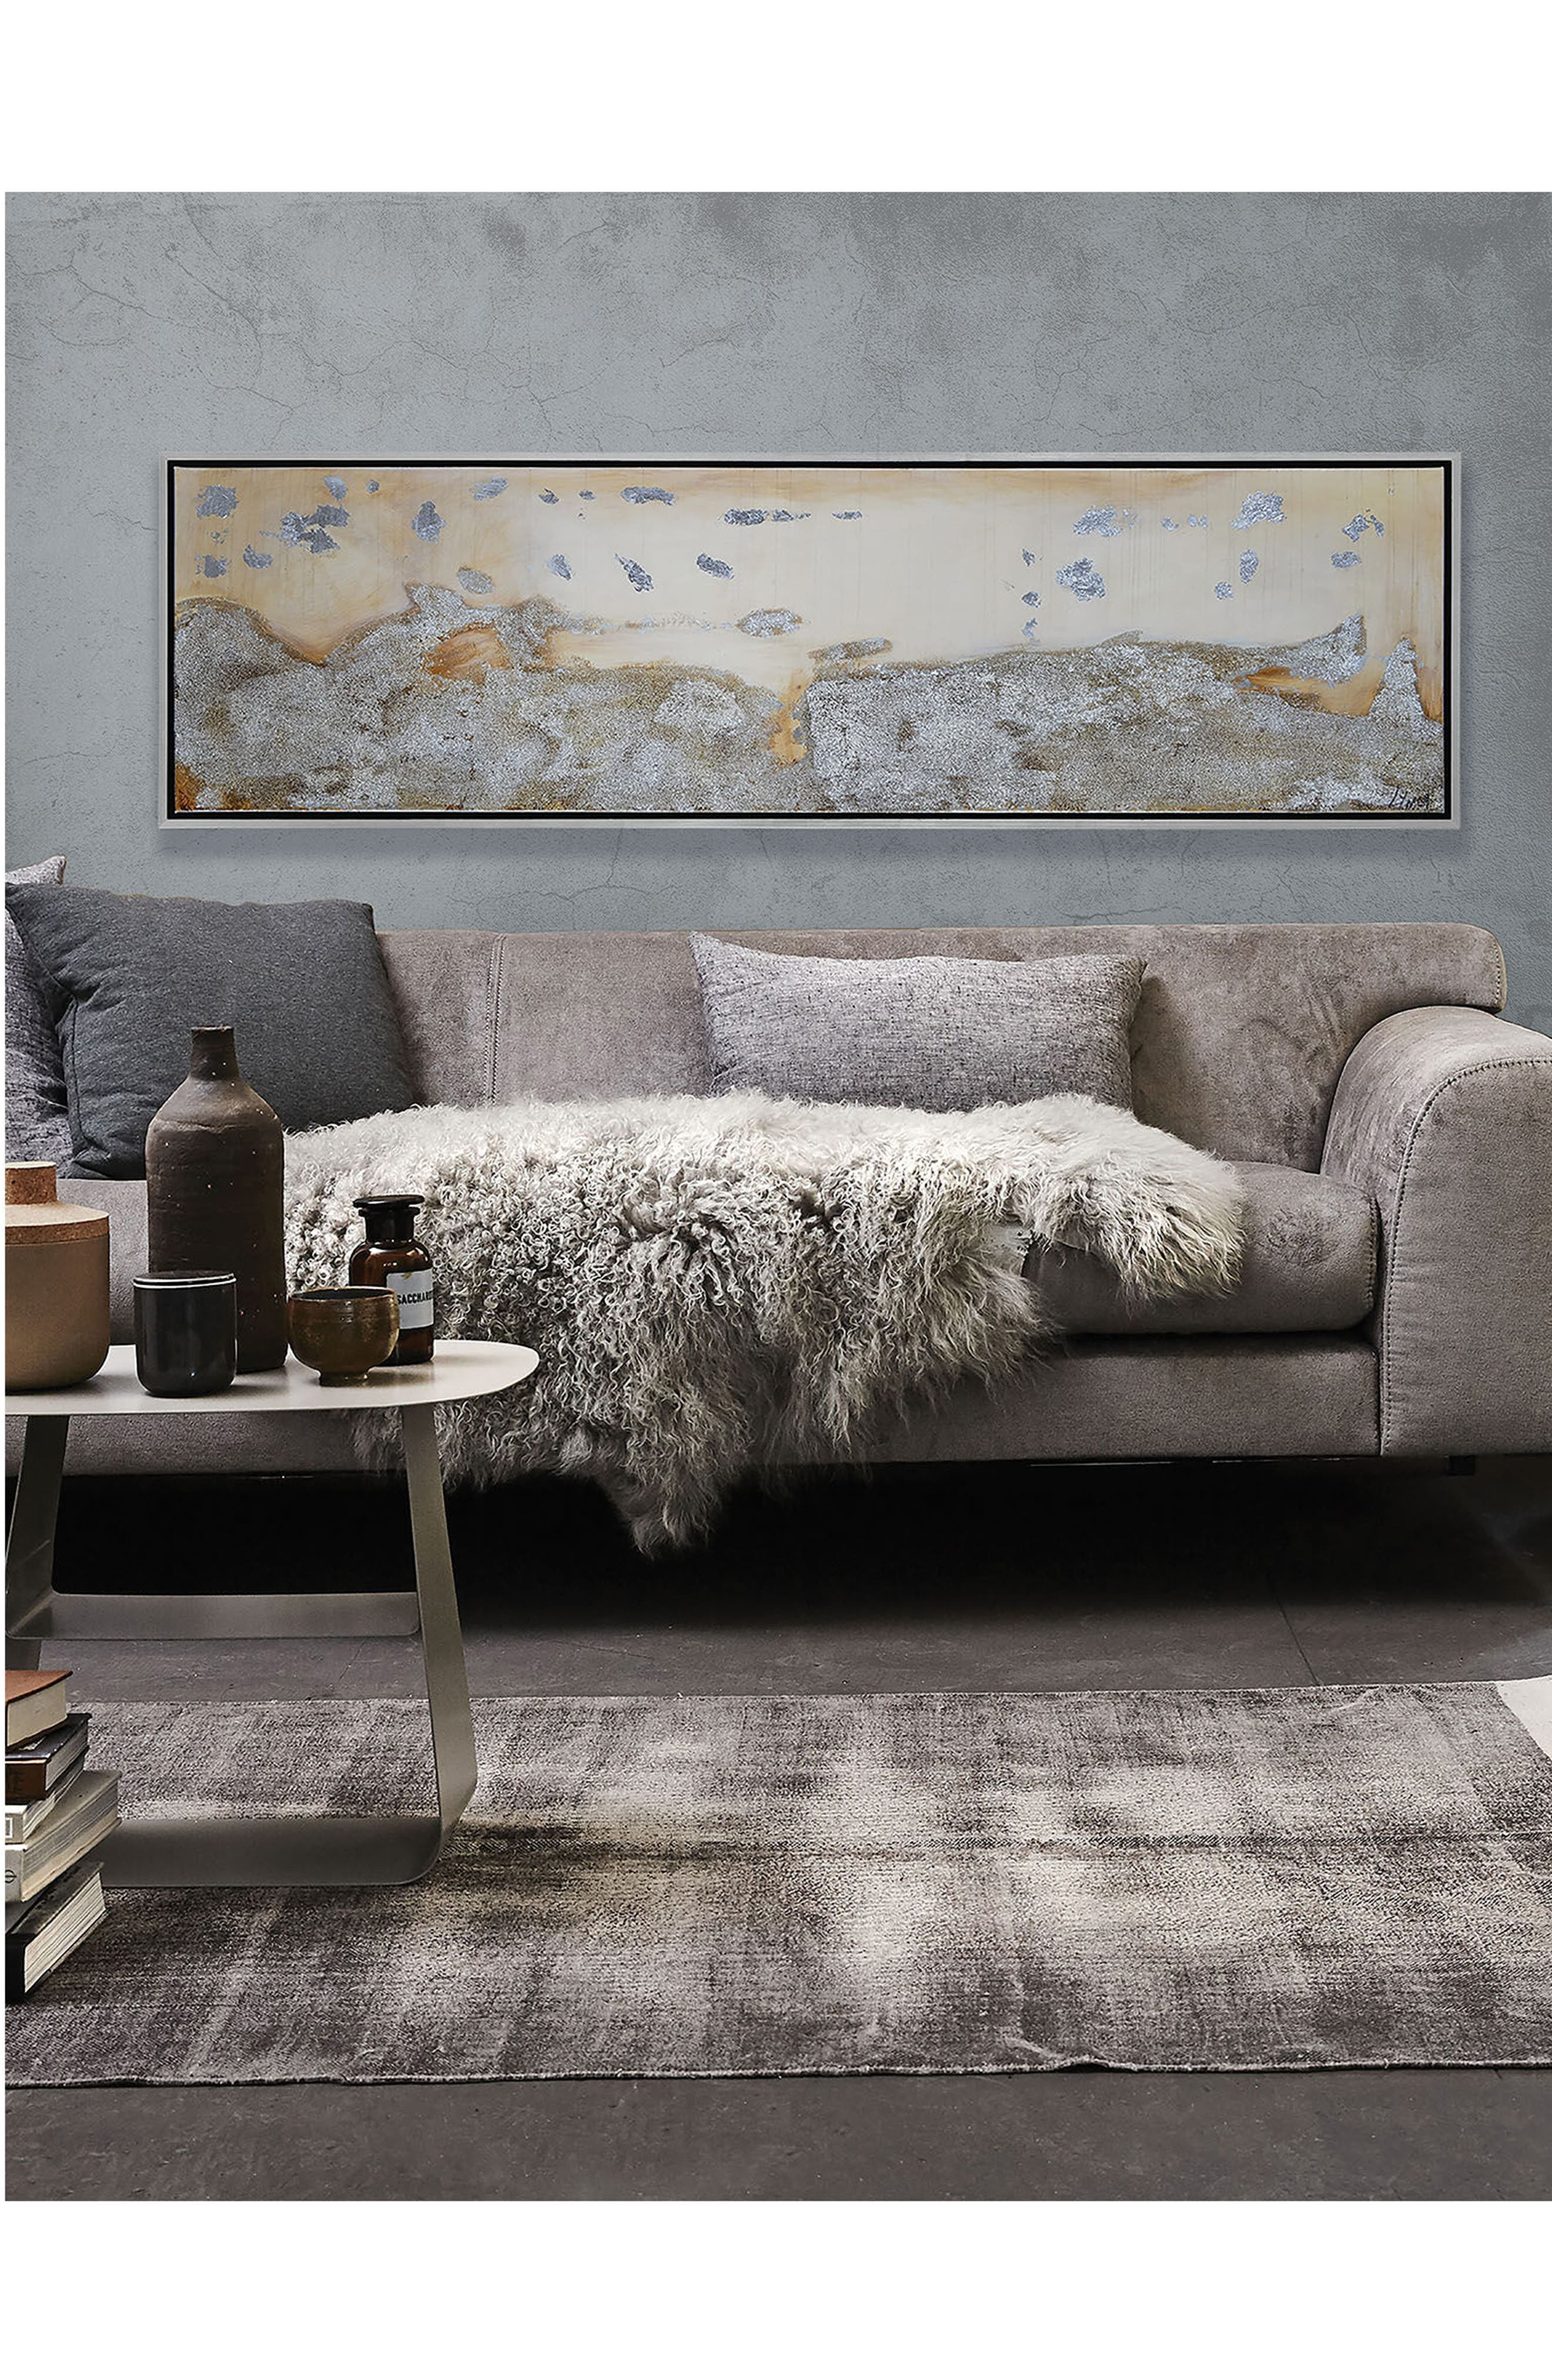 Dreamview Canvas Wall Art,                             Alternate thumbnail 2, color,                             Multicolor